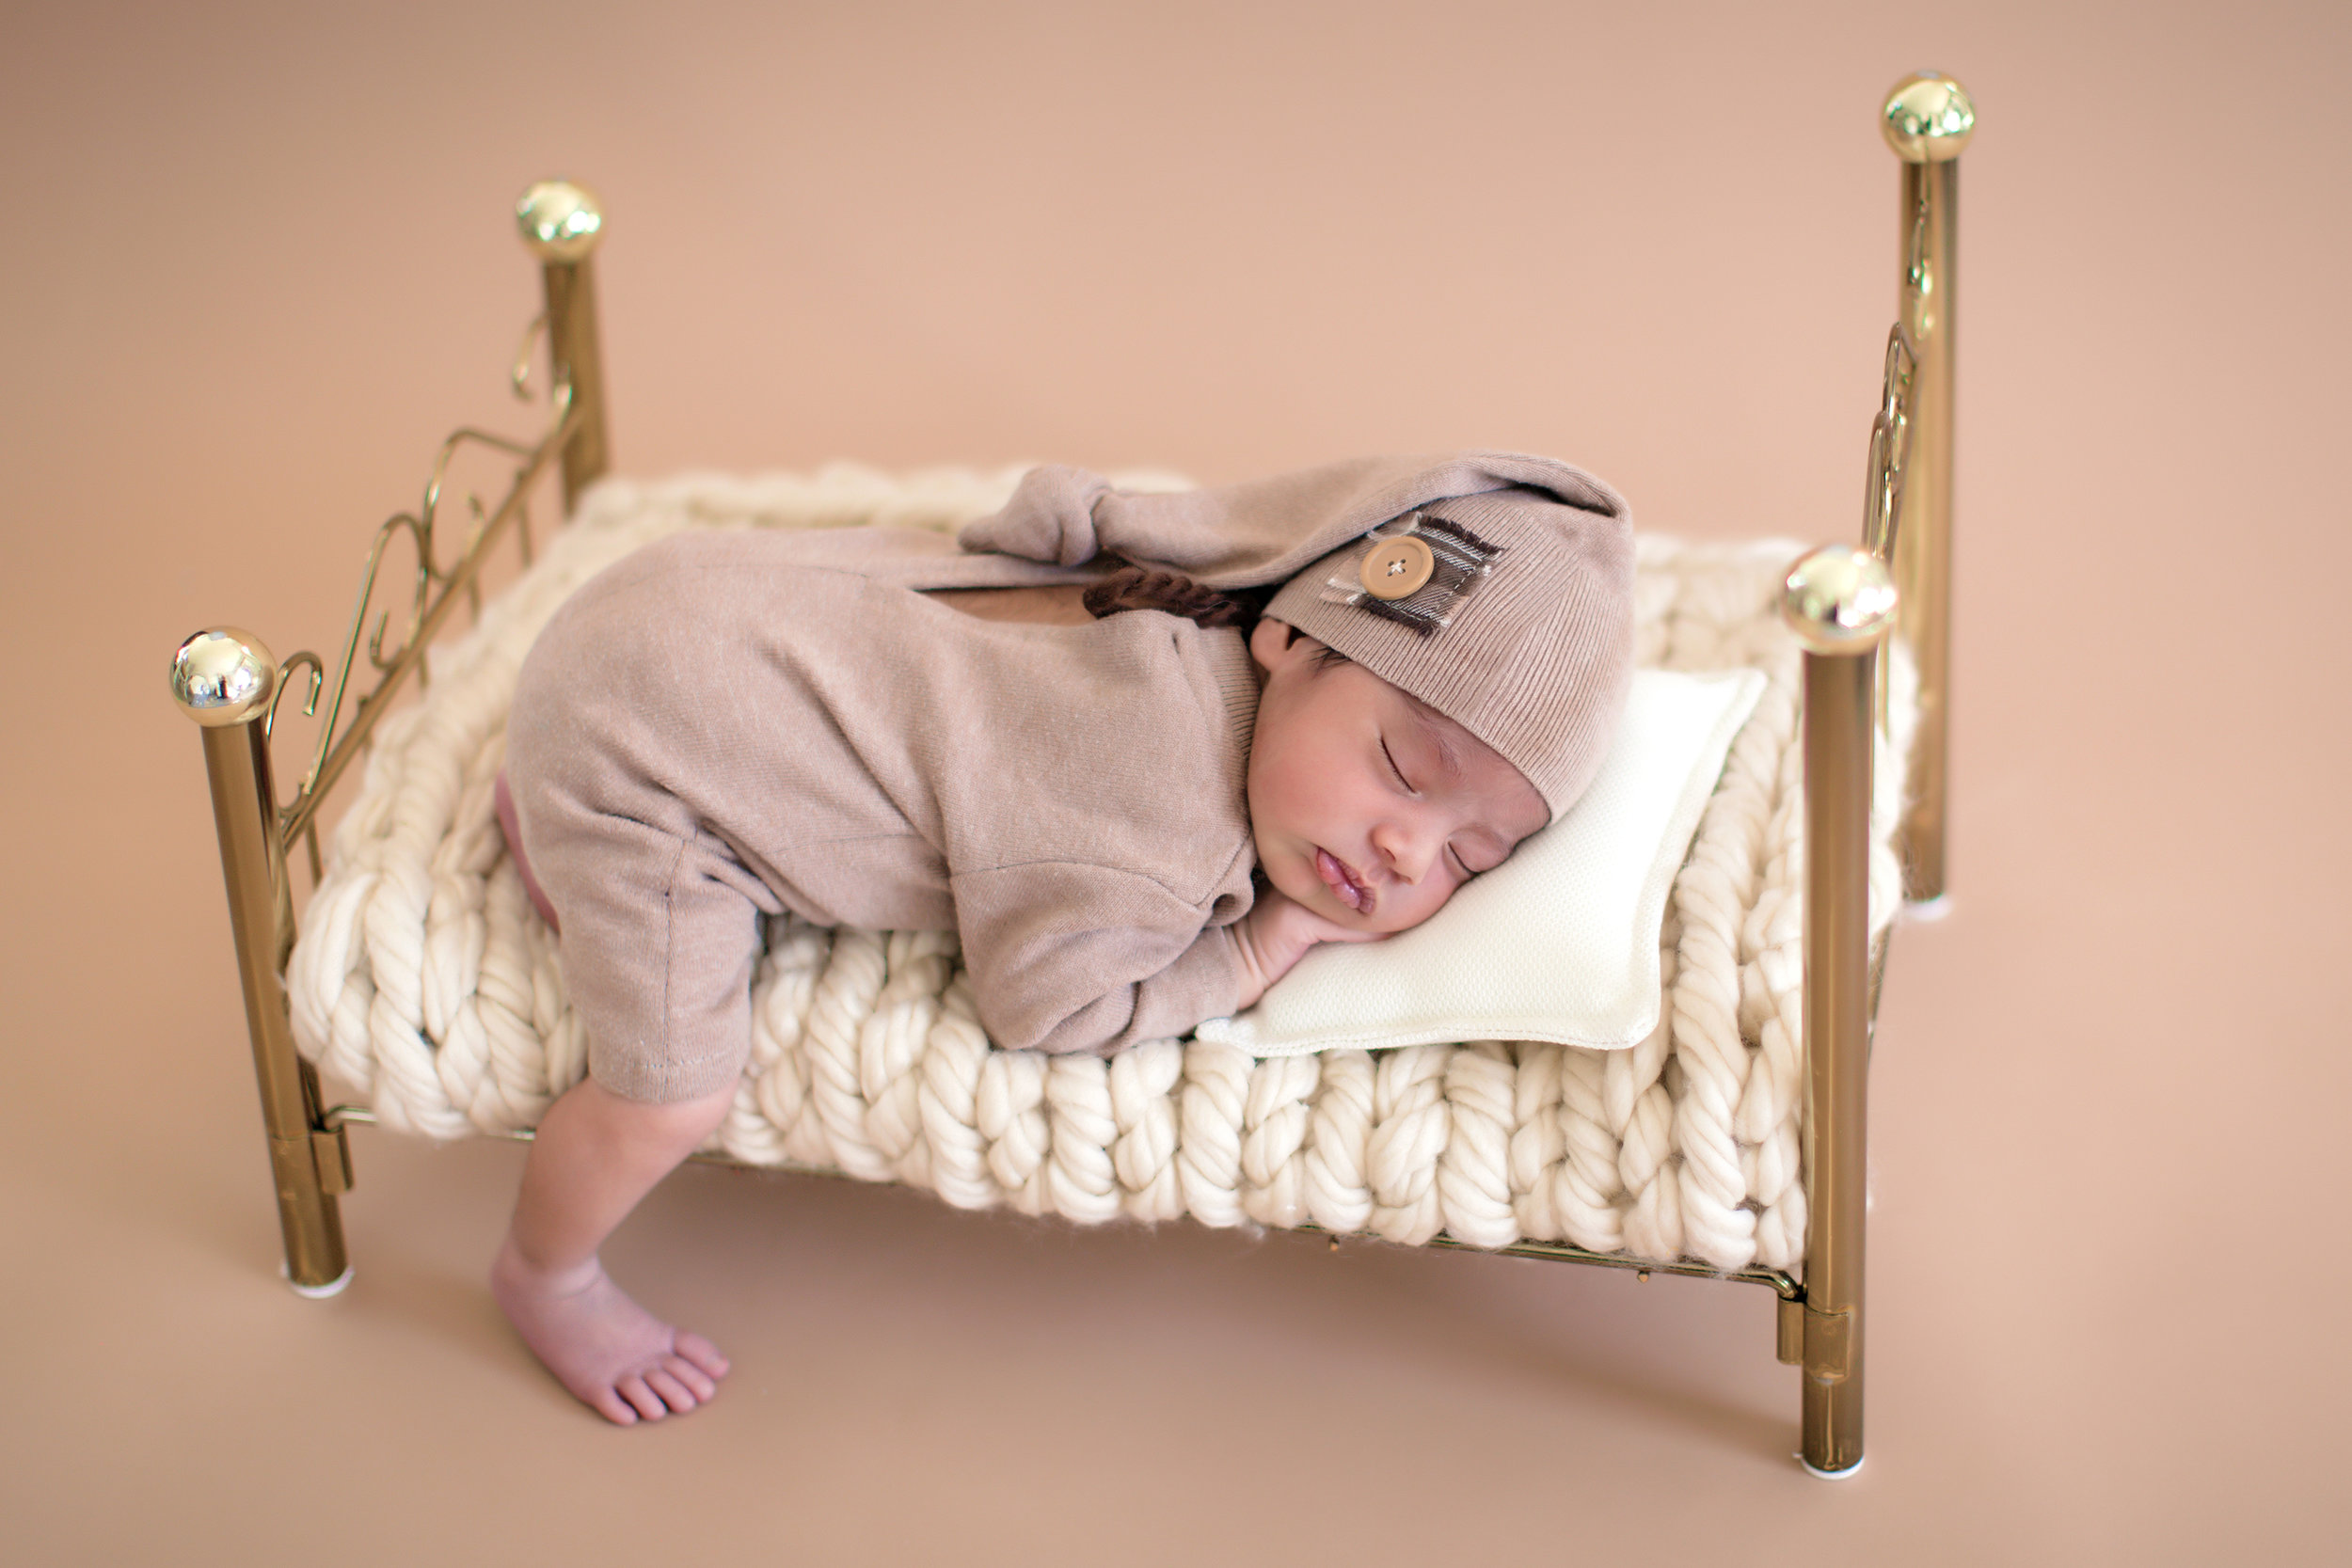 Newborn baby boy sleeping soundly on a little bed. Newborn baby photoshoot ideas - Calgary and Airdrie newborn and baby photographer